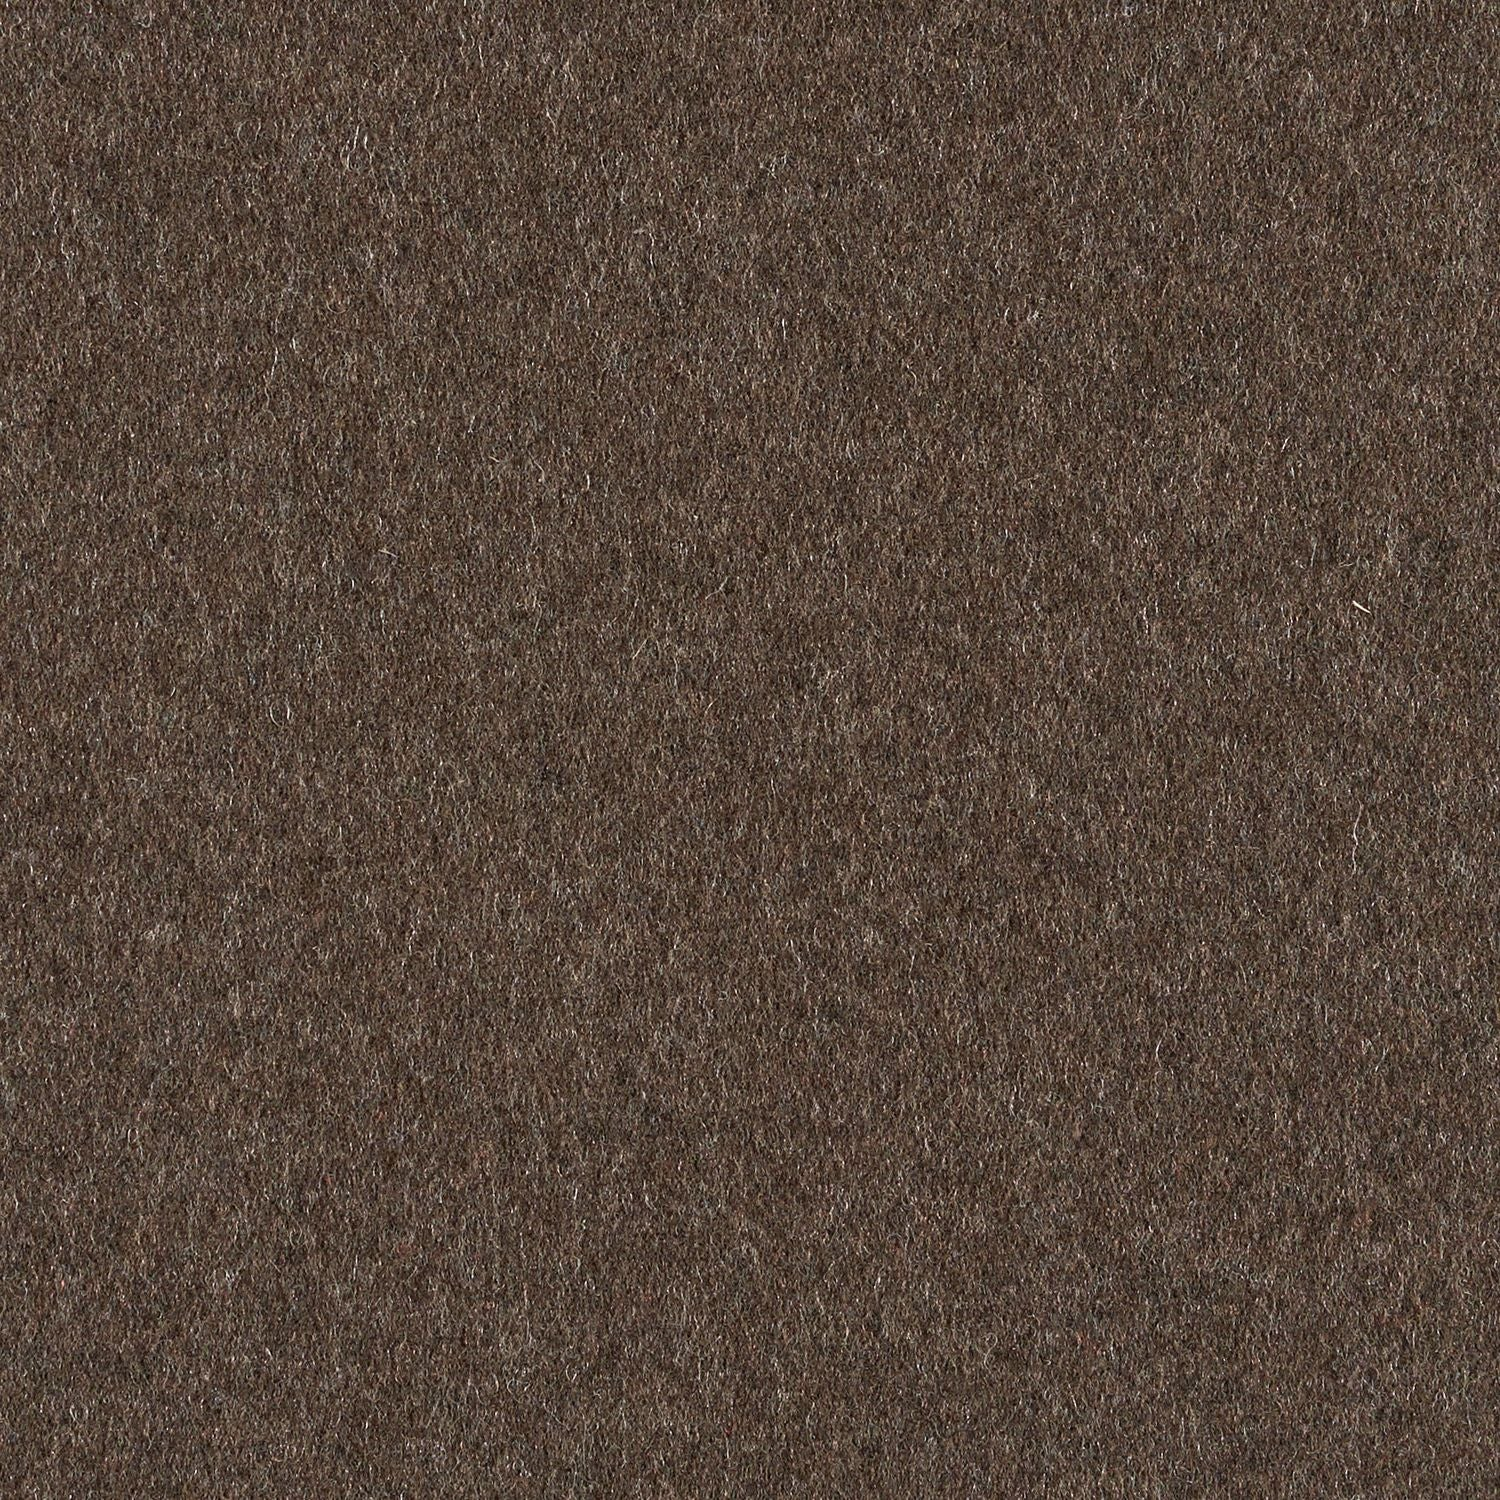 Heather Felt - Falcon - 4007 - 12